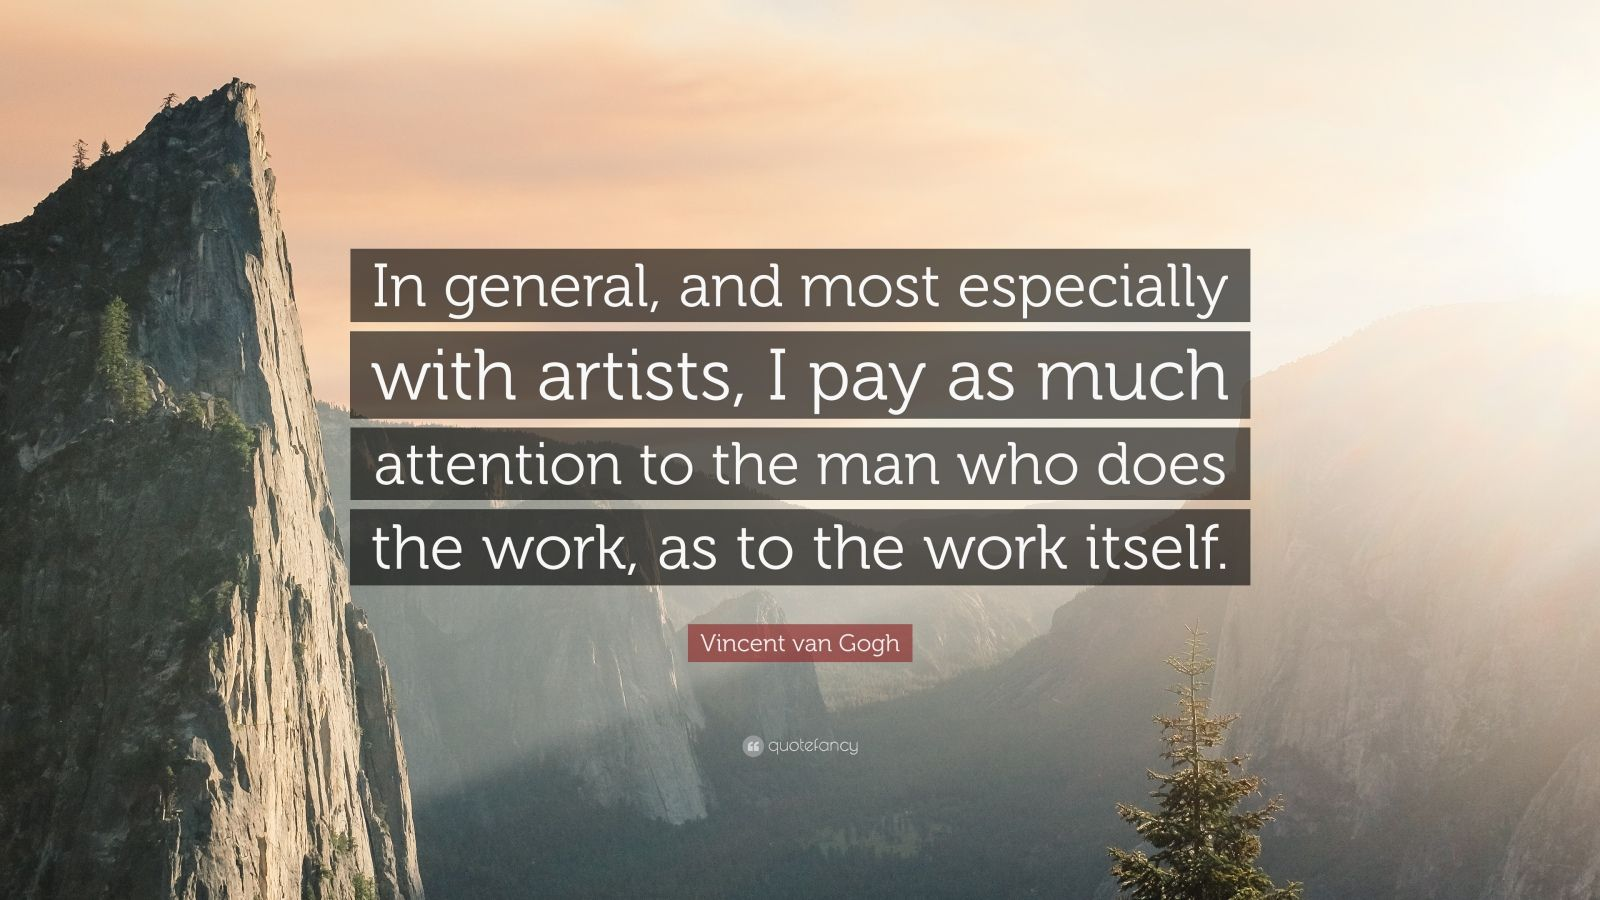 """Vincent Van Gogh Quotes: """"In general, and most especially with artists, I pay as much attention to the man who does the work, as to the work itself."""" — Vincent van Gogh"""